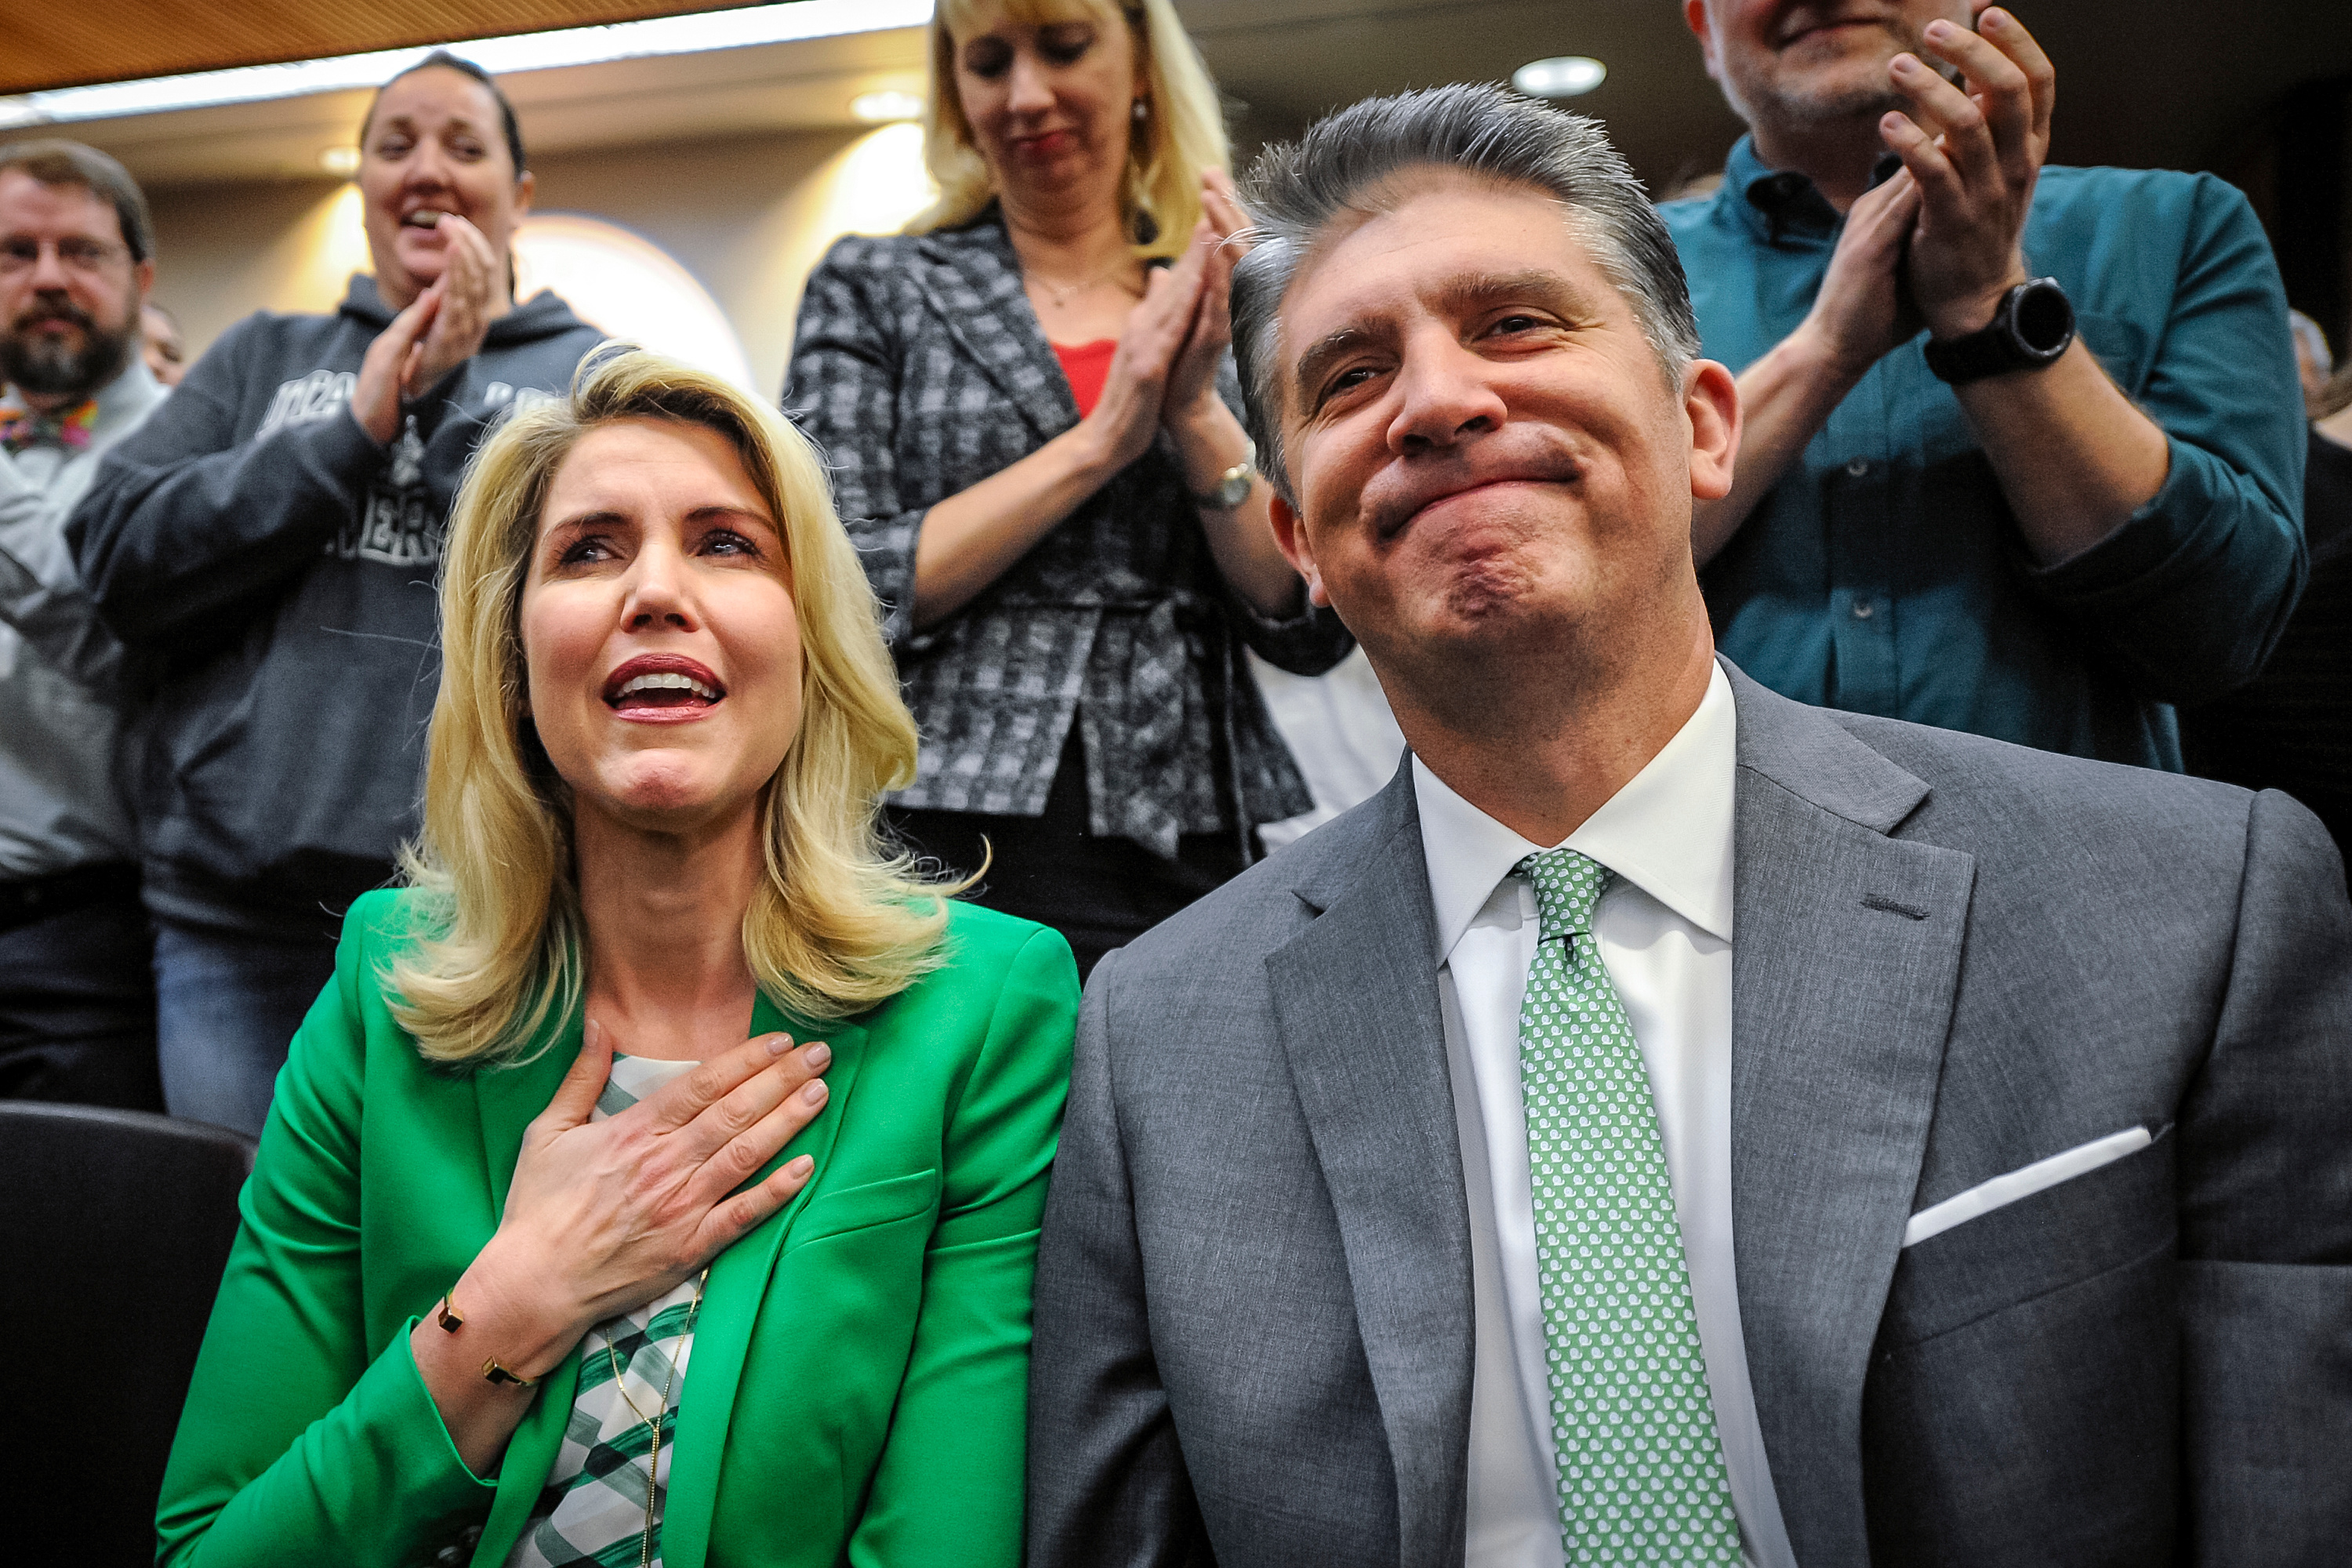 Paige Holland, left, and outgoing President Matthew S. Holland react when thanked for their service towards the university at the public meeting of the Board of Trustees where Astrid S. Tuminez is introduced as the seventh President of Utah Valley University in Orem on Friday, April 20, 2018.